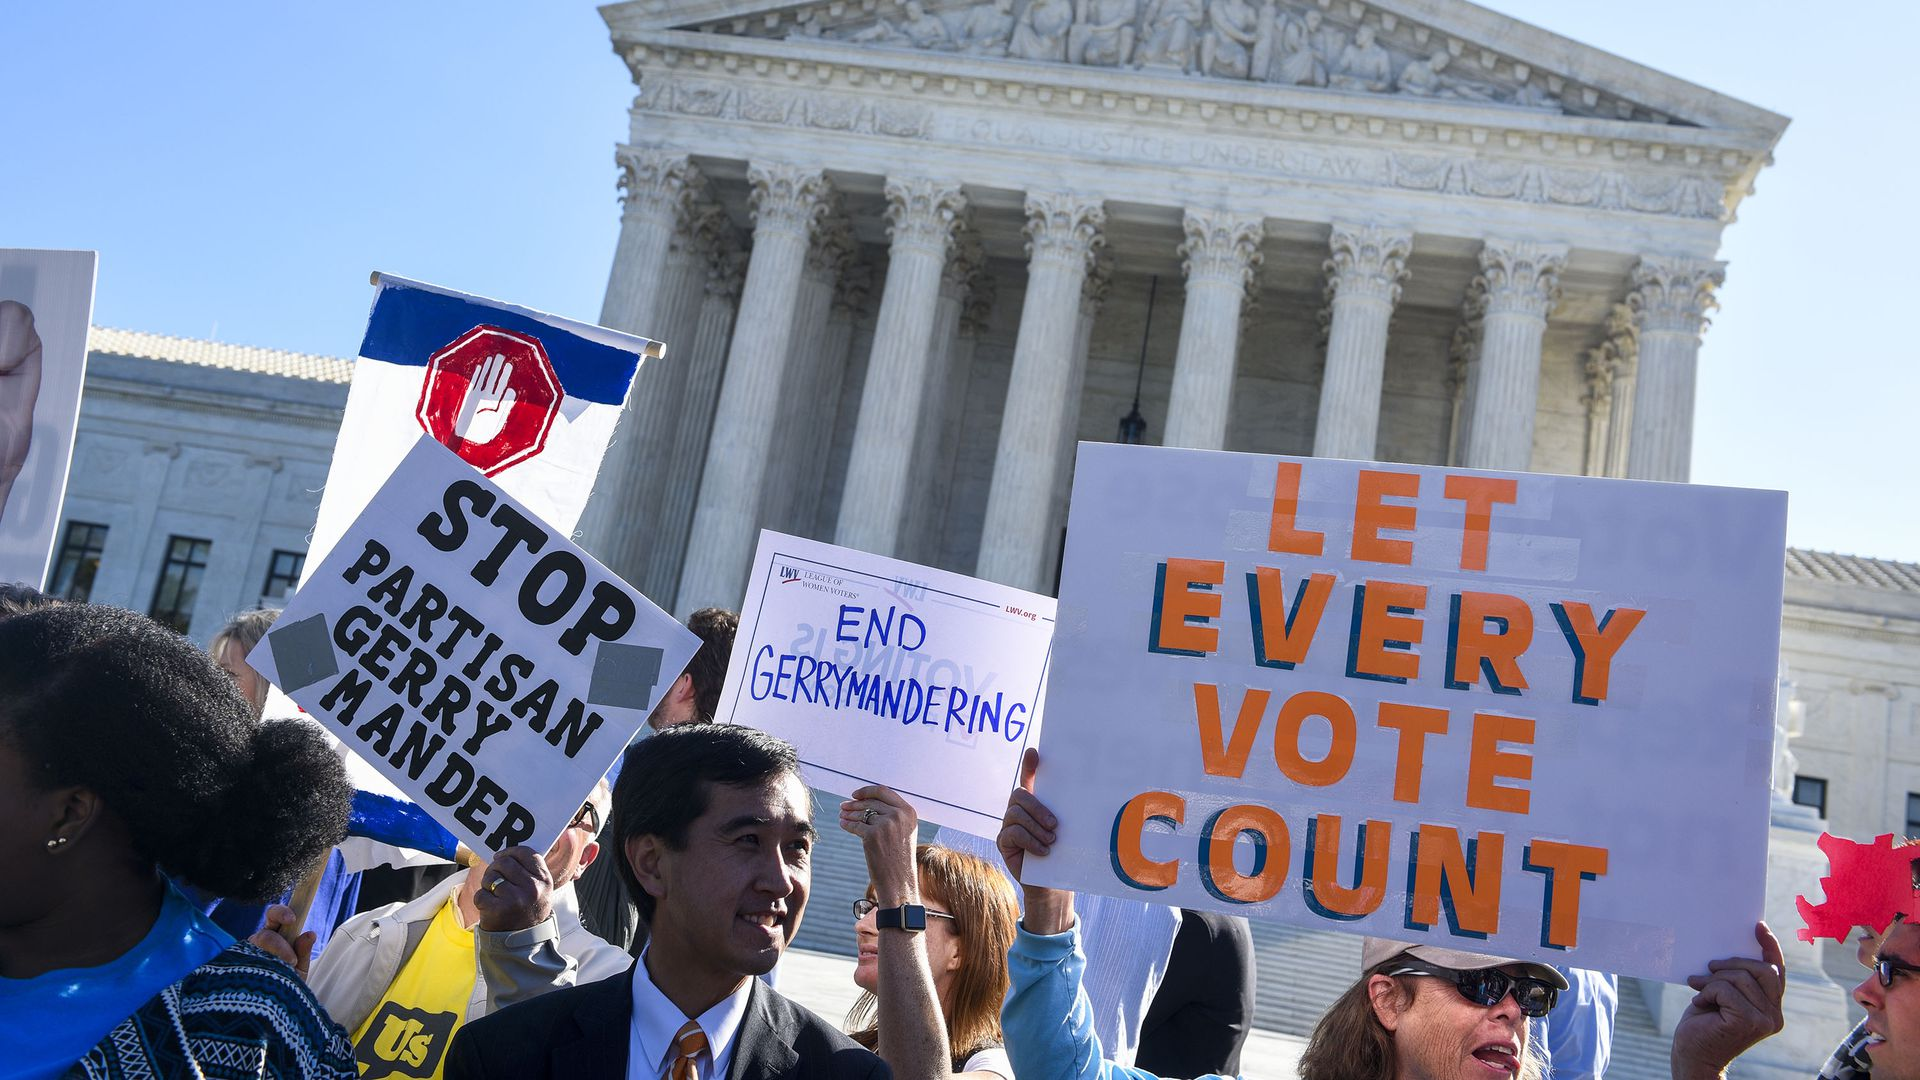 Protestors at a rally to call for 'An End to Partisan Gerrymandering' outside the Supreme Court. Photo: Leigh Vogel/Getty Images